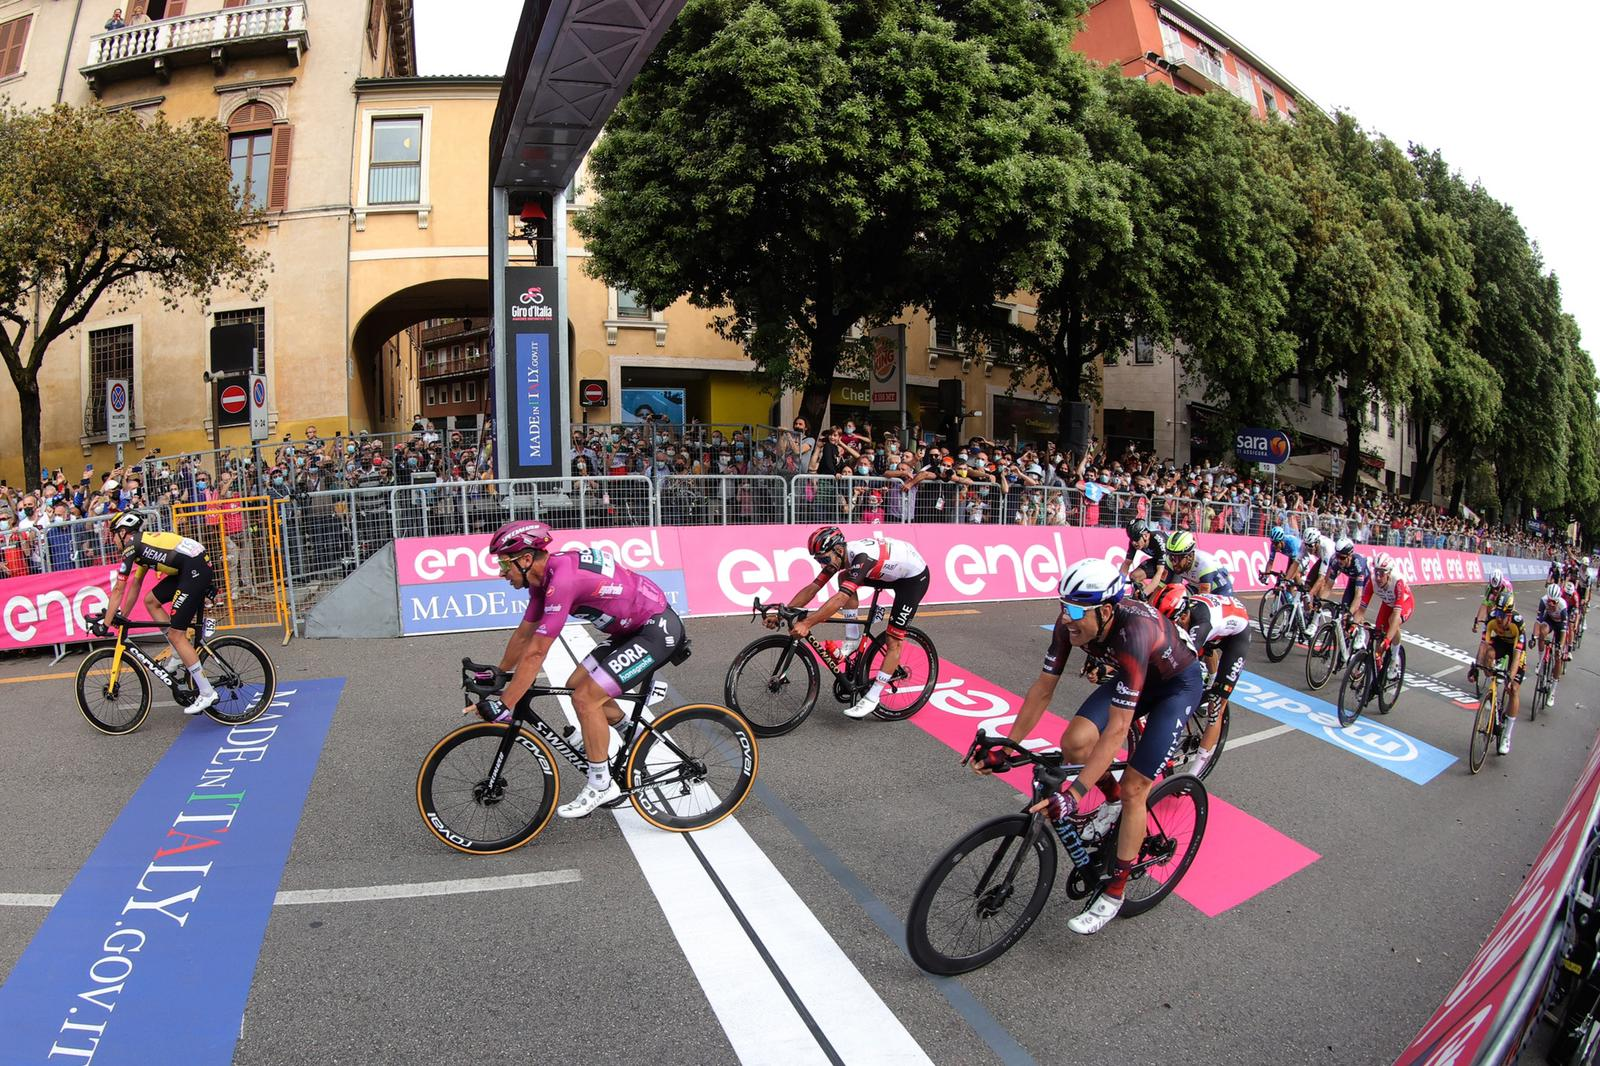 Cimolai sprints to fourth place in thirteenth stage of Giro